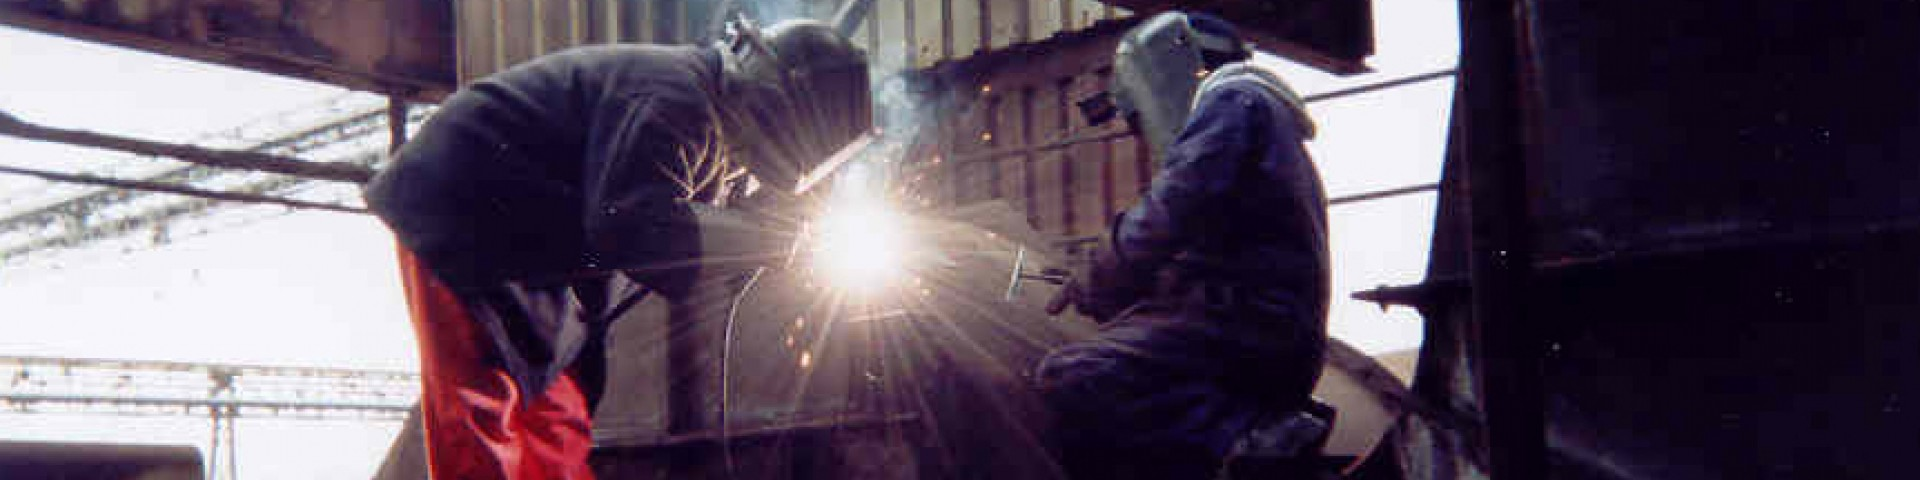 Welding and mobil mechanics